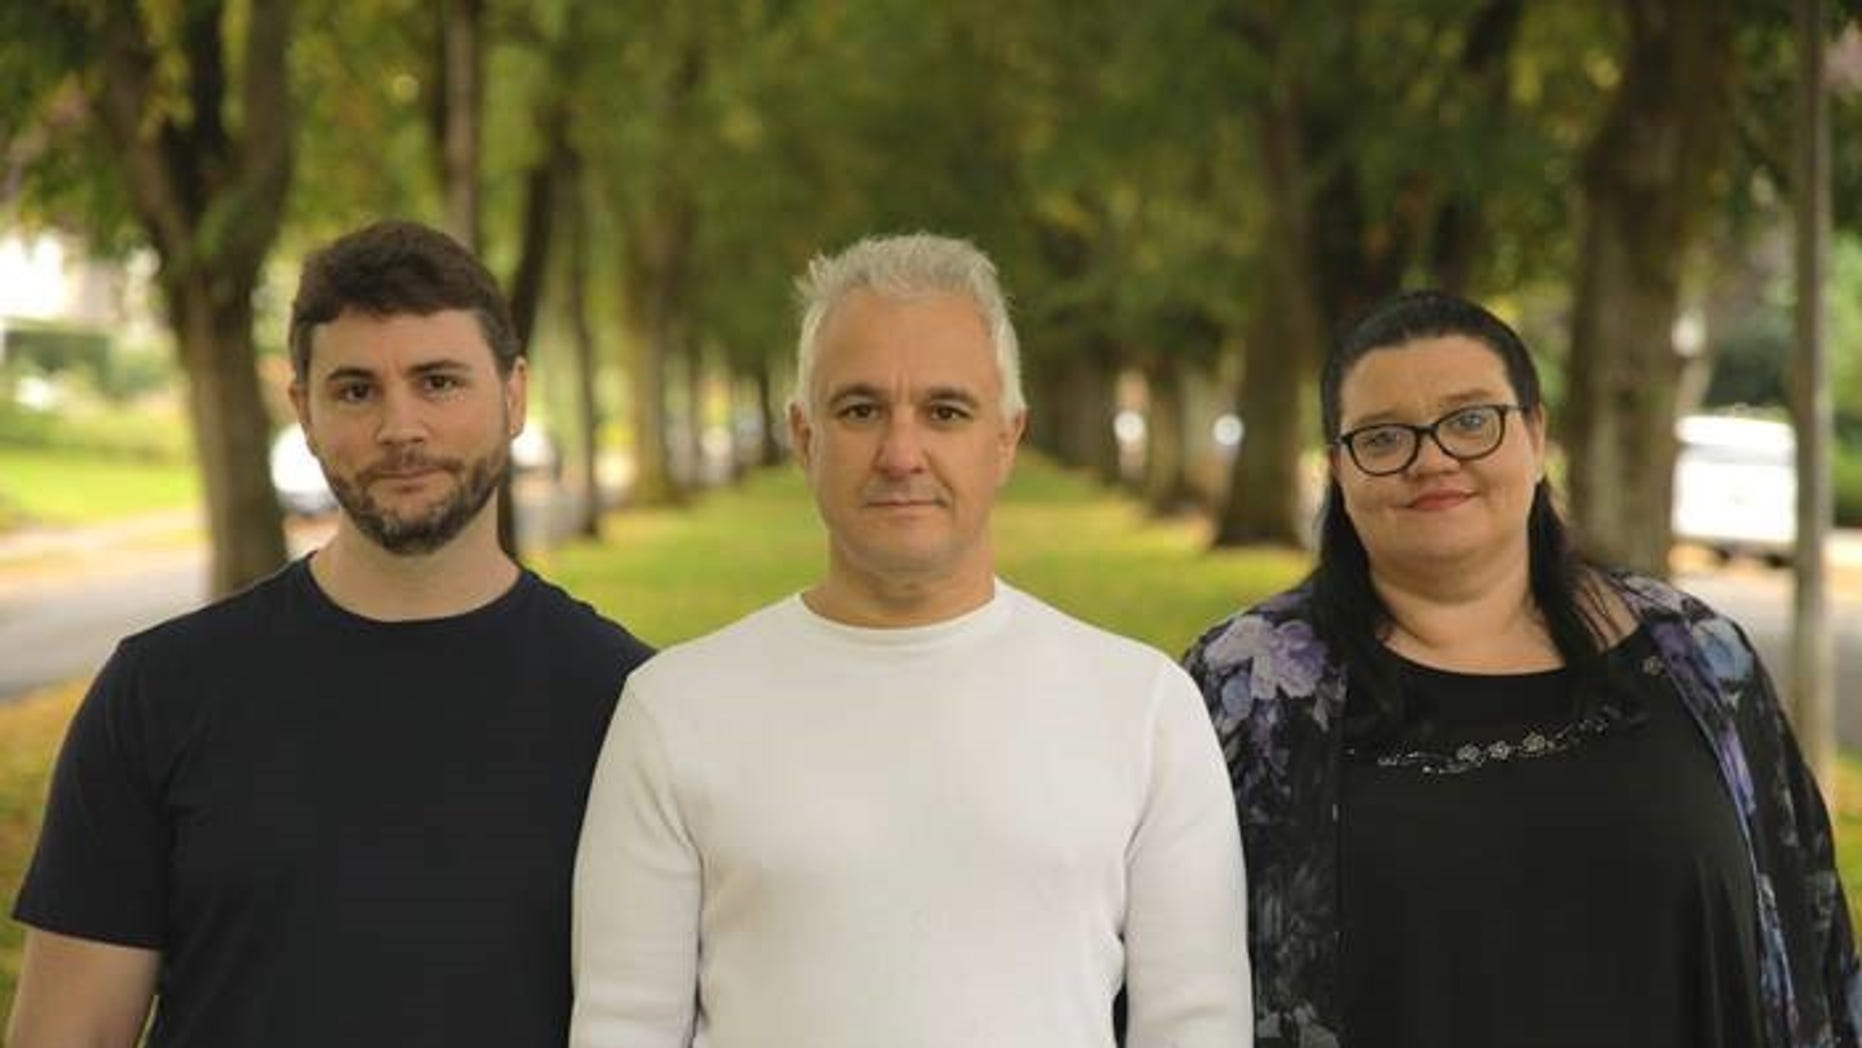 Peter Boghossian (center) was one of three people (flanked by James Lindsay and Helen Pluckrose) who collaborated last year to test the standards of various university disciplines, submitting papers loaded with left-wing buzzwords to journals in fields like feminism, race studies, queer studies, and cultural studies